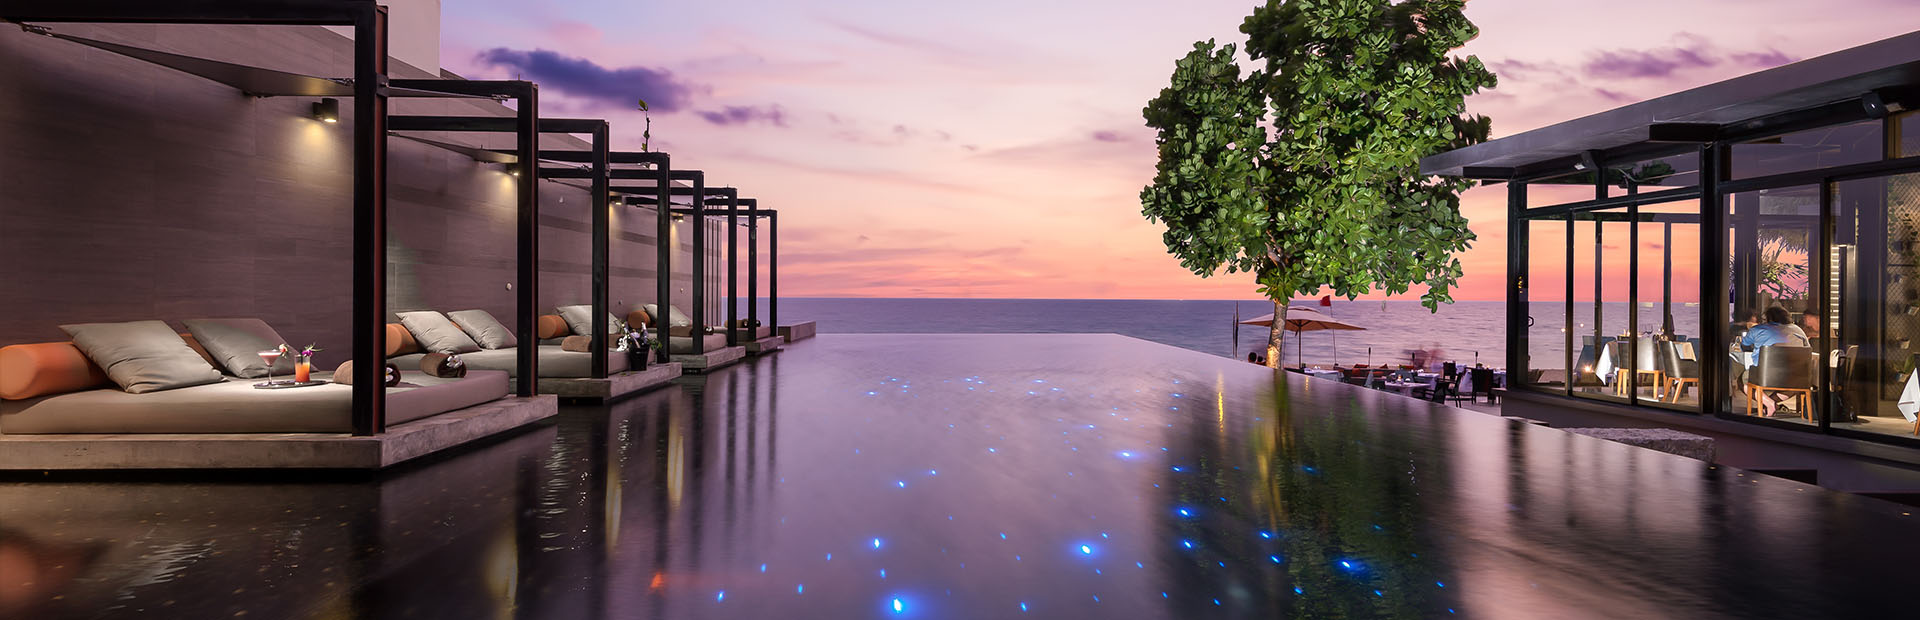 Aleenta Resorts & Spa - Luxury five star hotel resort and villas in Phang Nga, Phuket